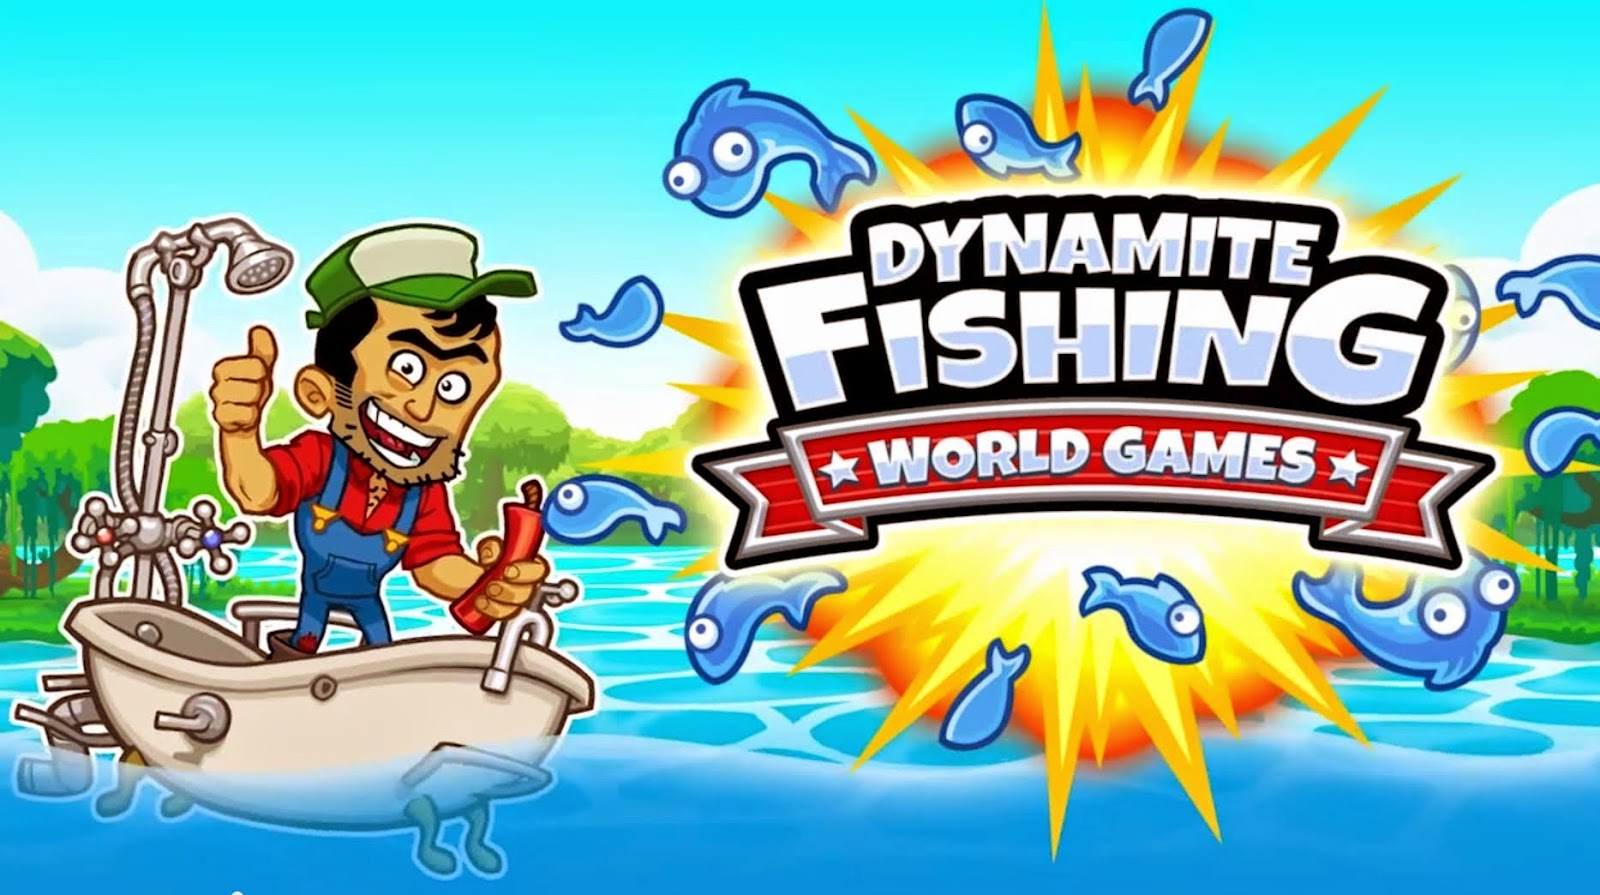 Dynamite Fishing – World Games Gameplay